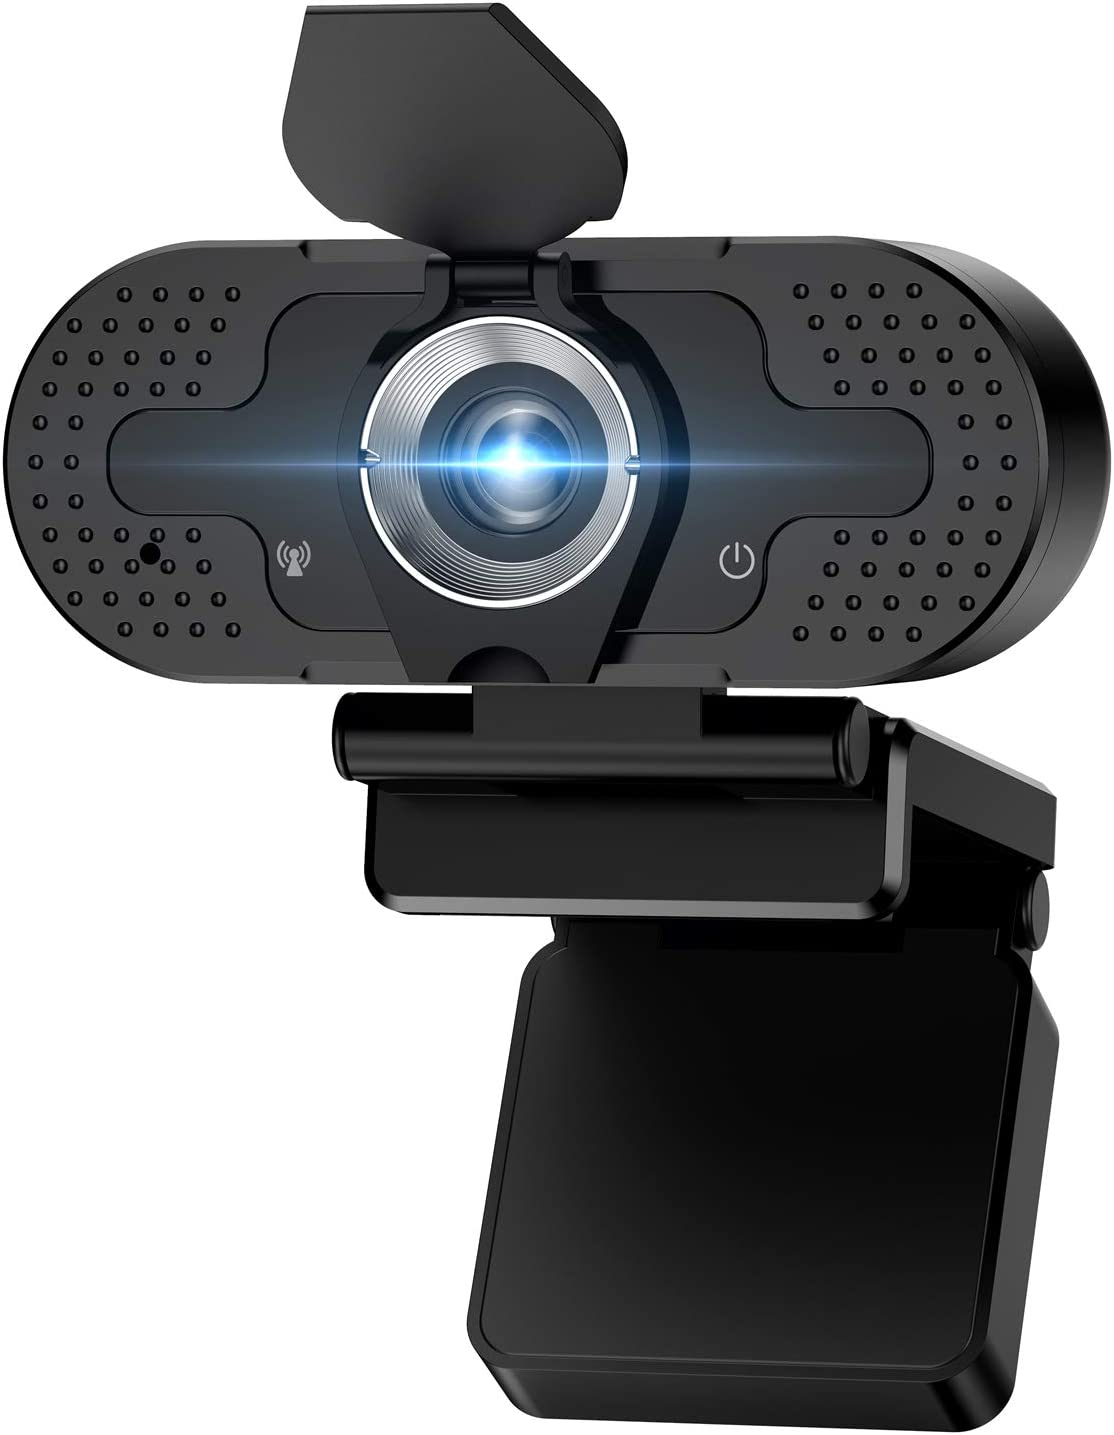 Webcam with Microphone, 1080P HD Live Streaming Webcam for Desktop or Laptop PC USB Plug and Play Camera for Computer Widescreen Video Calling, Recording, Conferencing, Online Classes,Streaming,Gaming